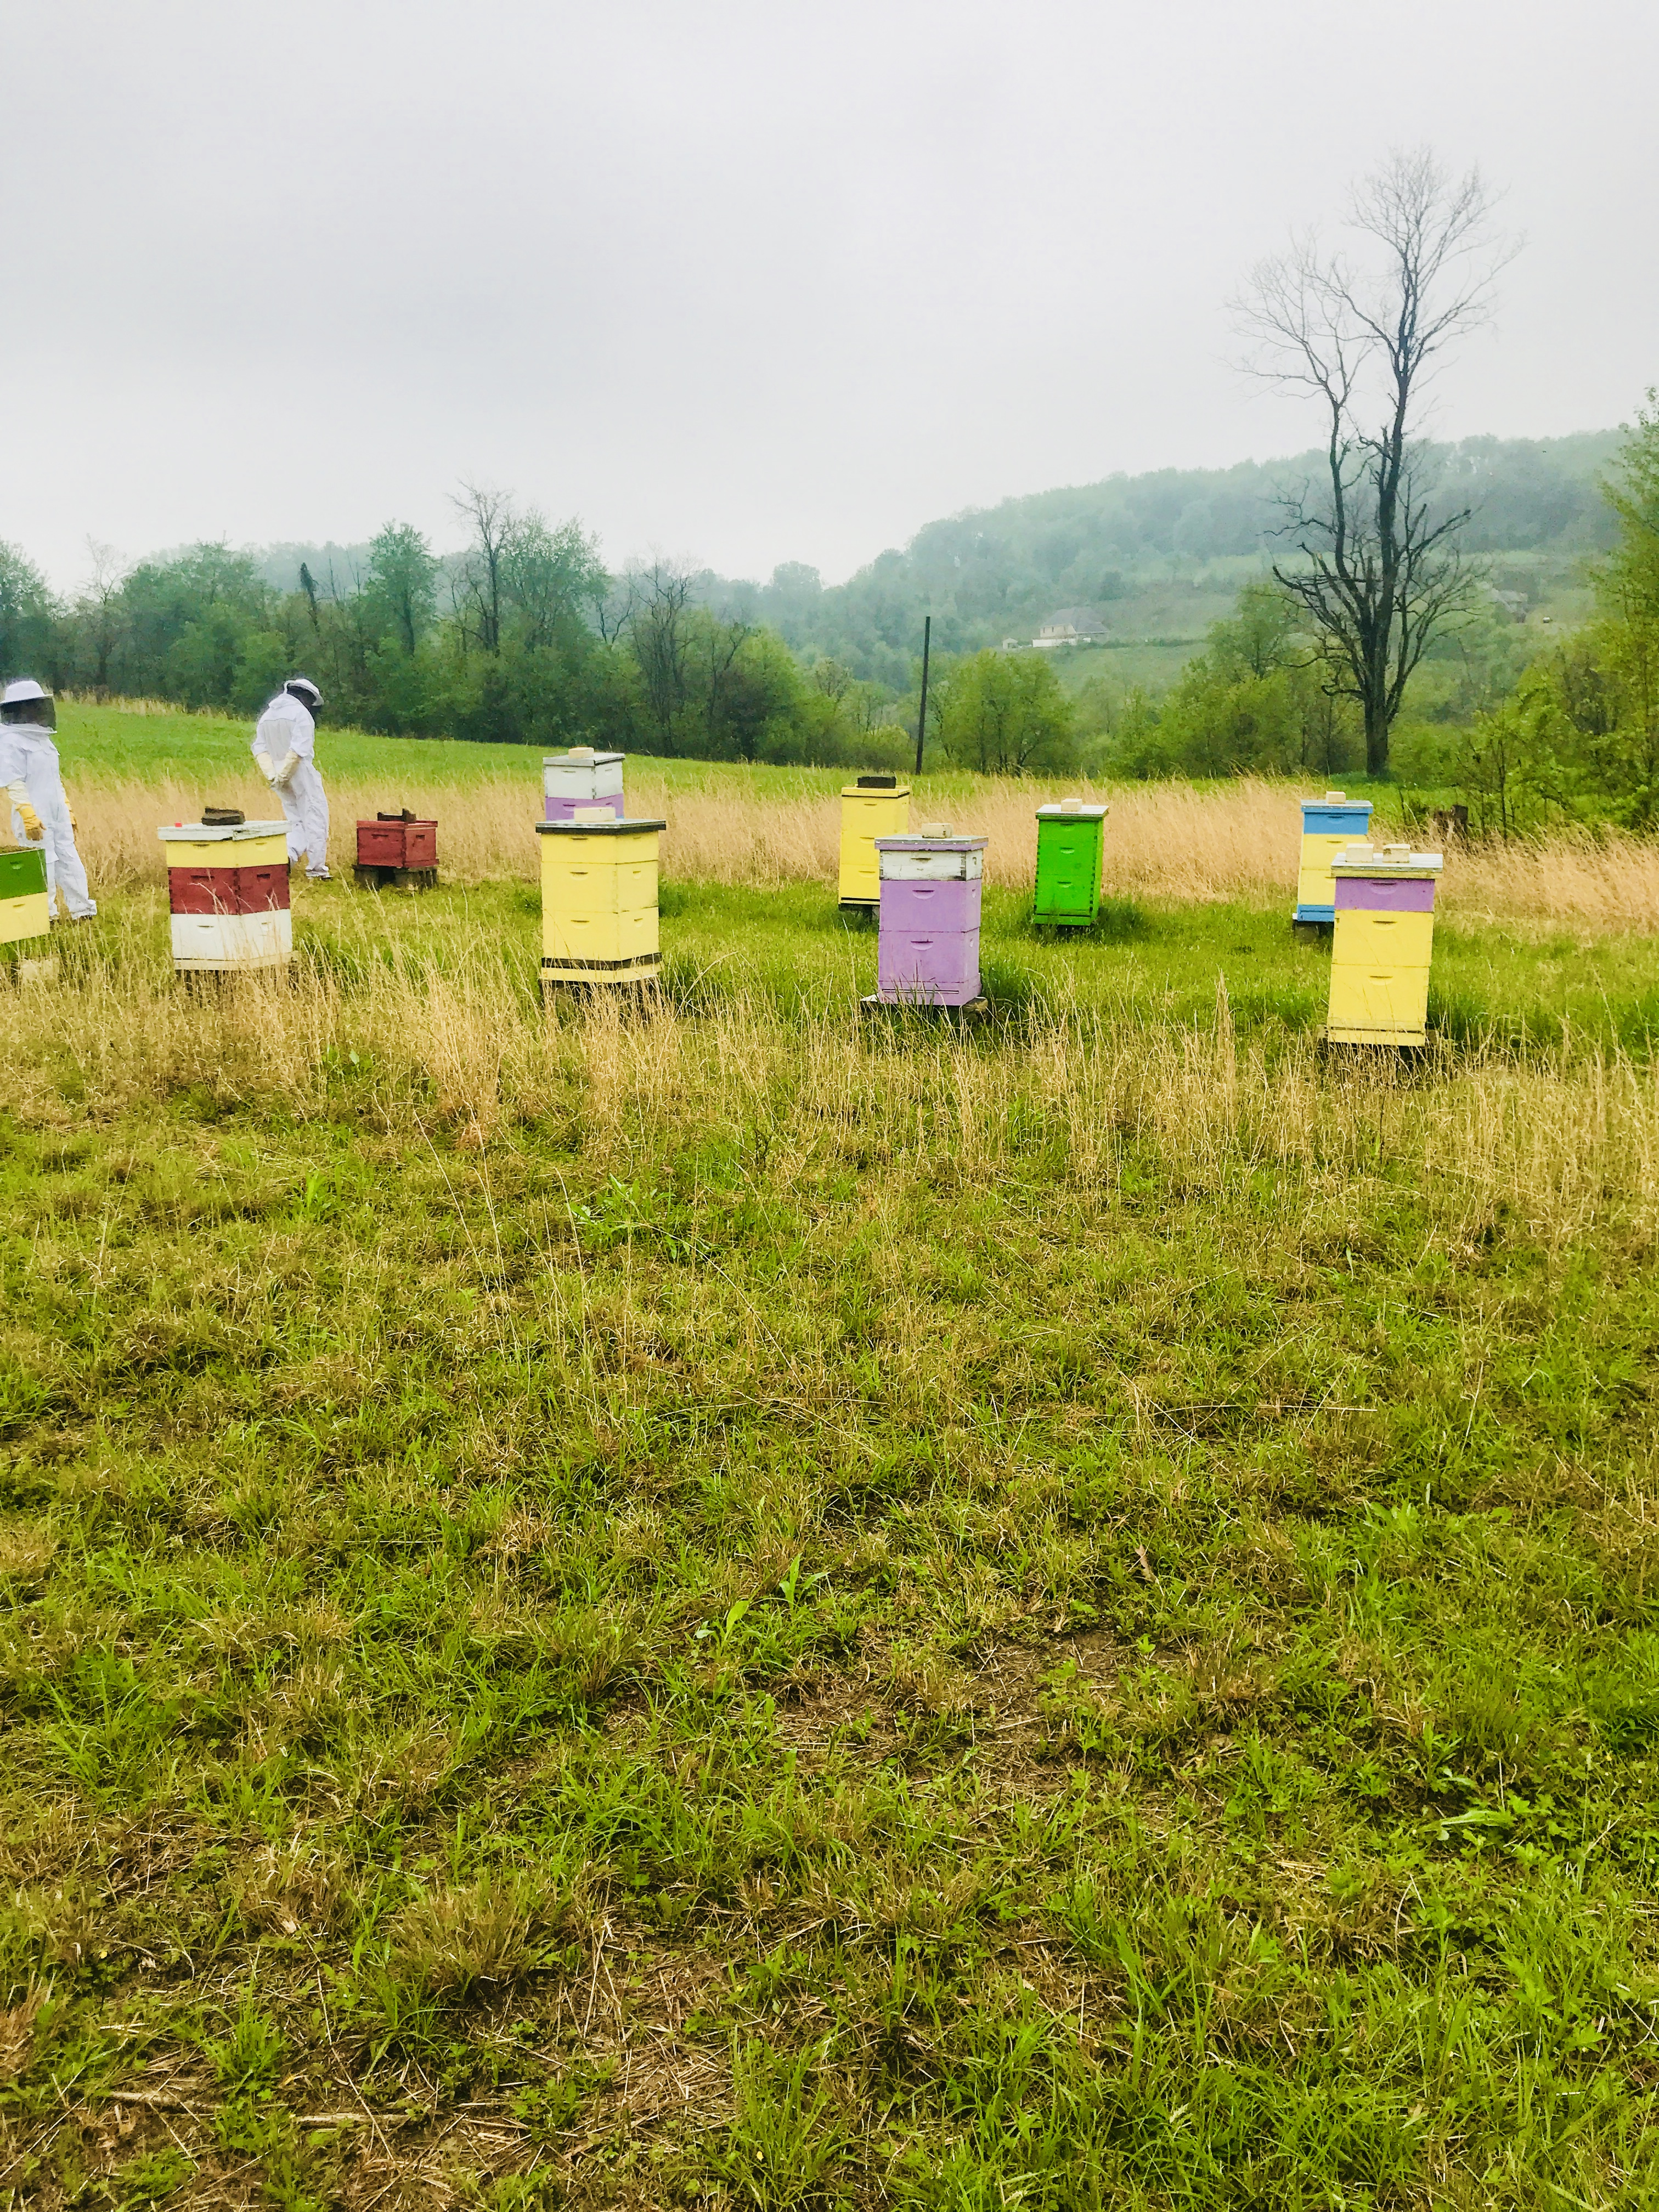 My Day with the Beekeeper